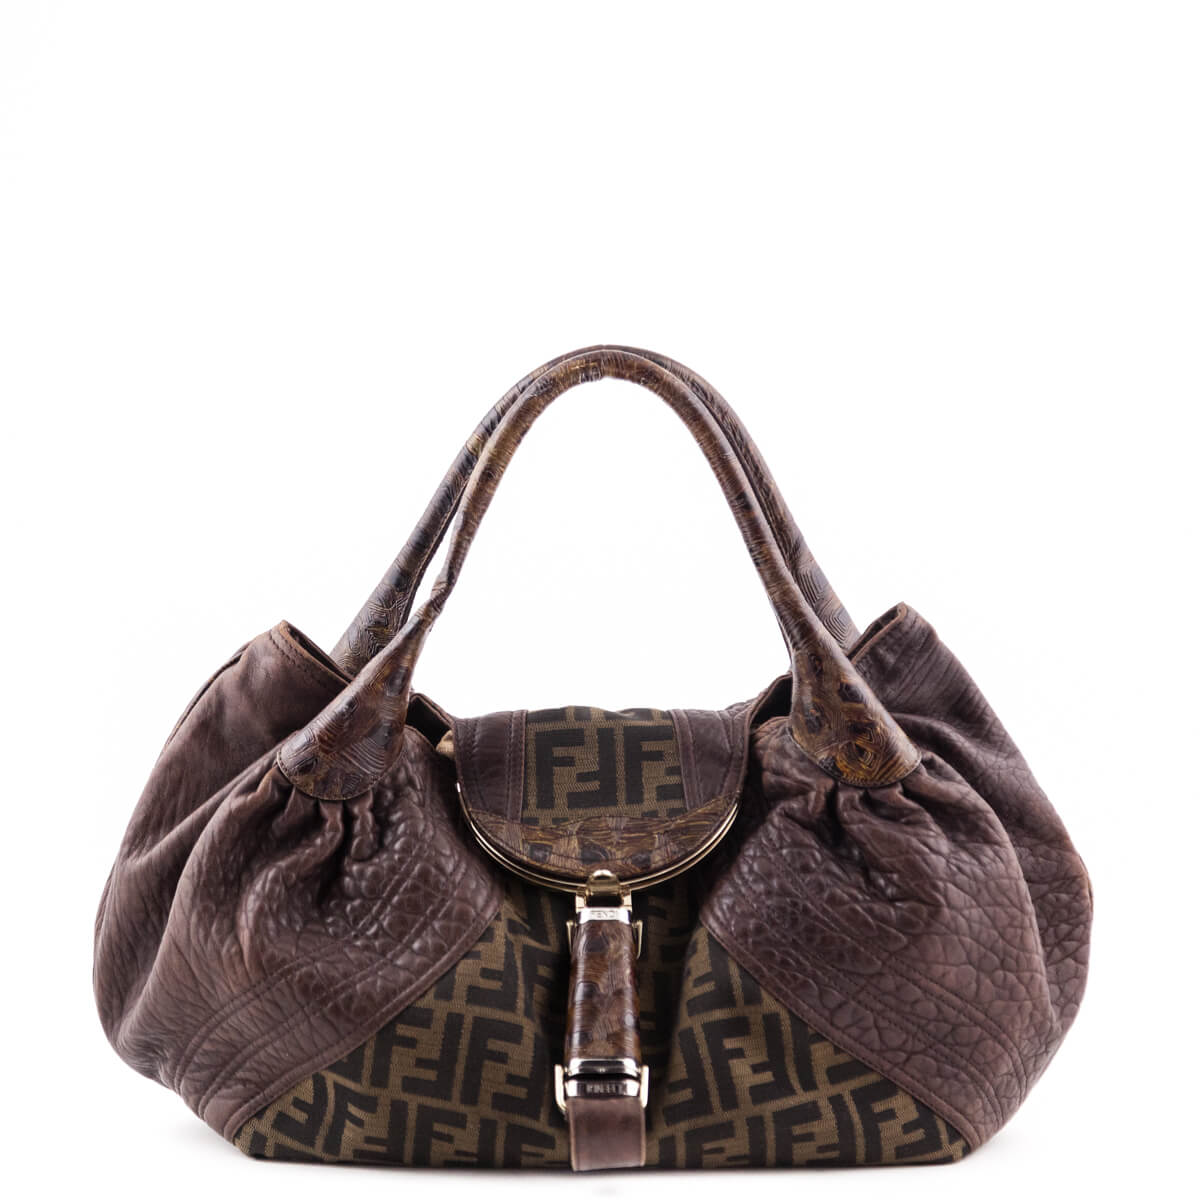 f9f5297d5a Fendi Monogram Canvas   Leather Spy Bag - LOVE that BAG - Preowned  Authentic Designer Handbags ...